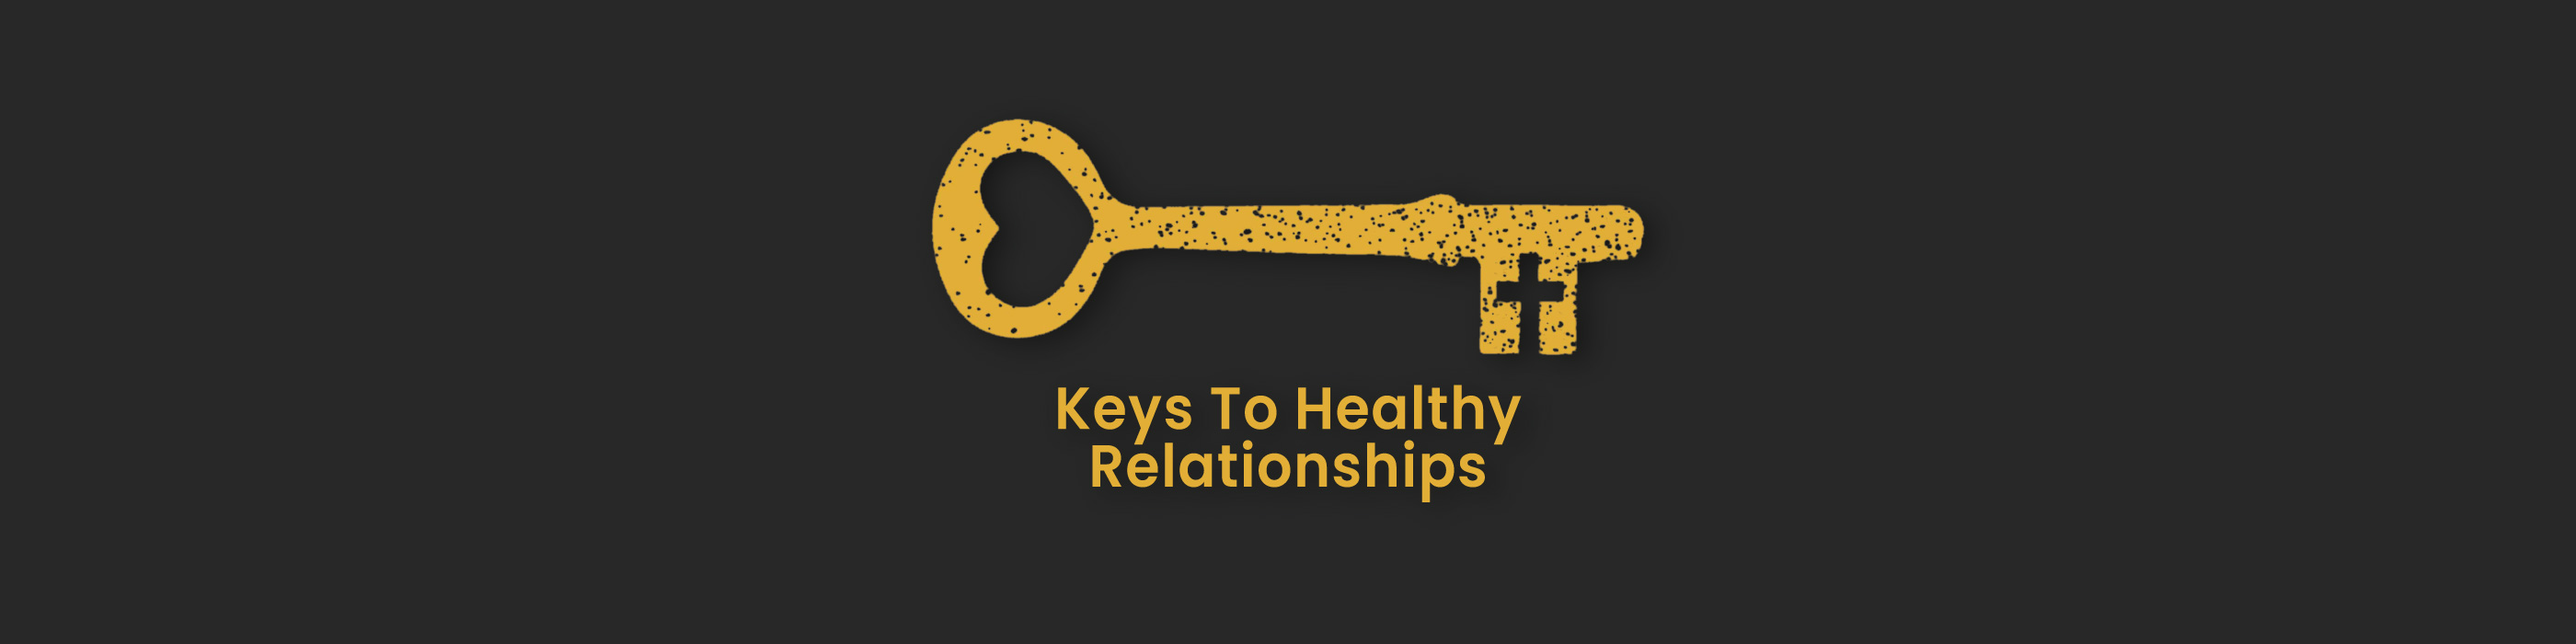 Summit-Church-Bulletin-keys-to-relationships-web-2800x700